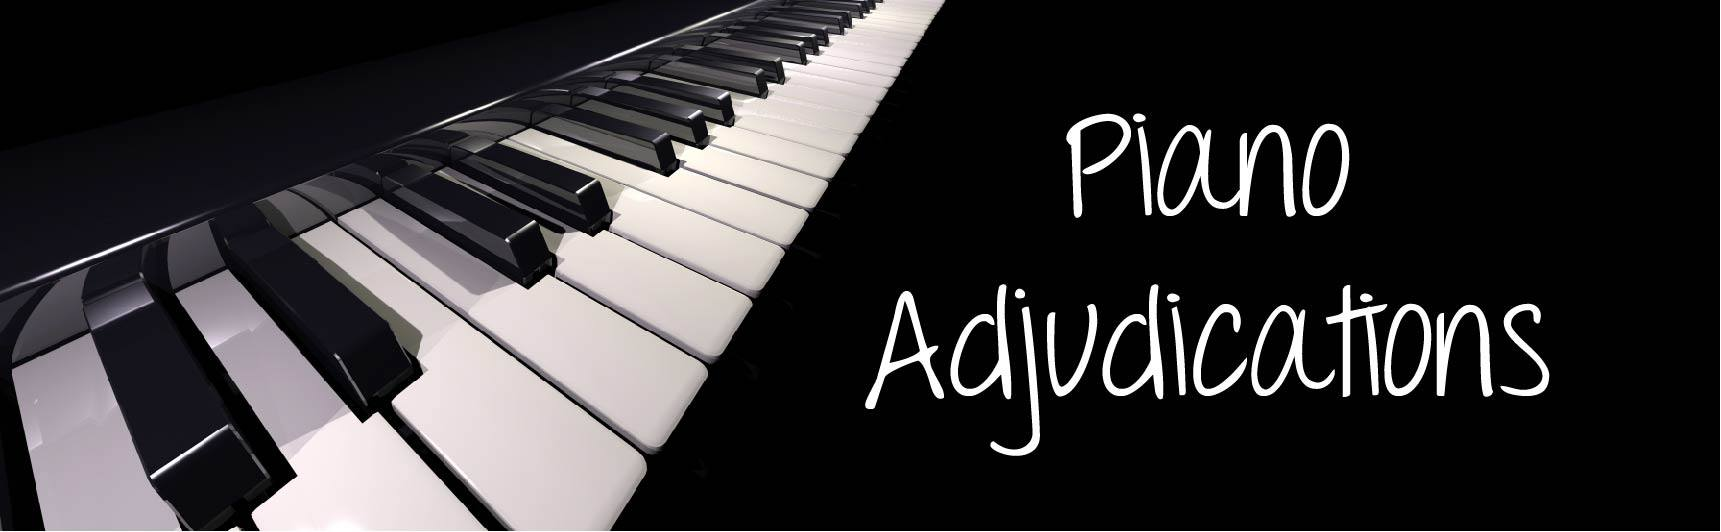 Piano Adjudications